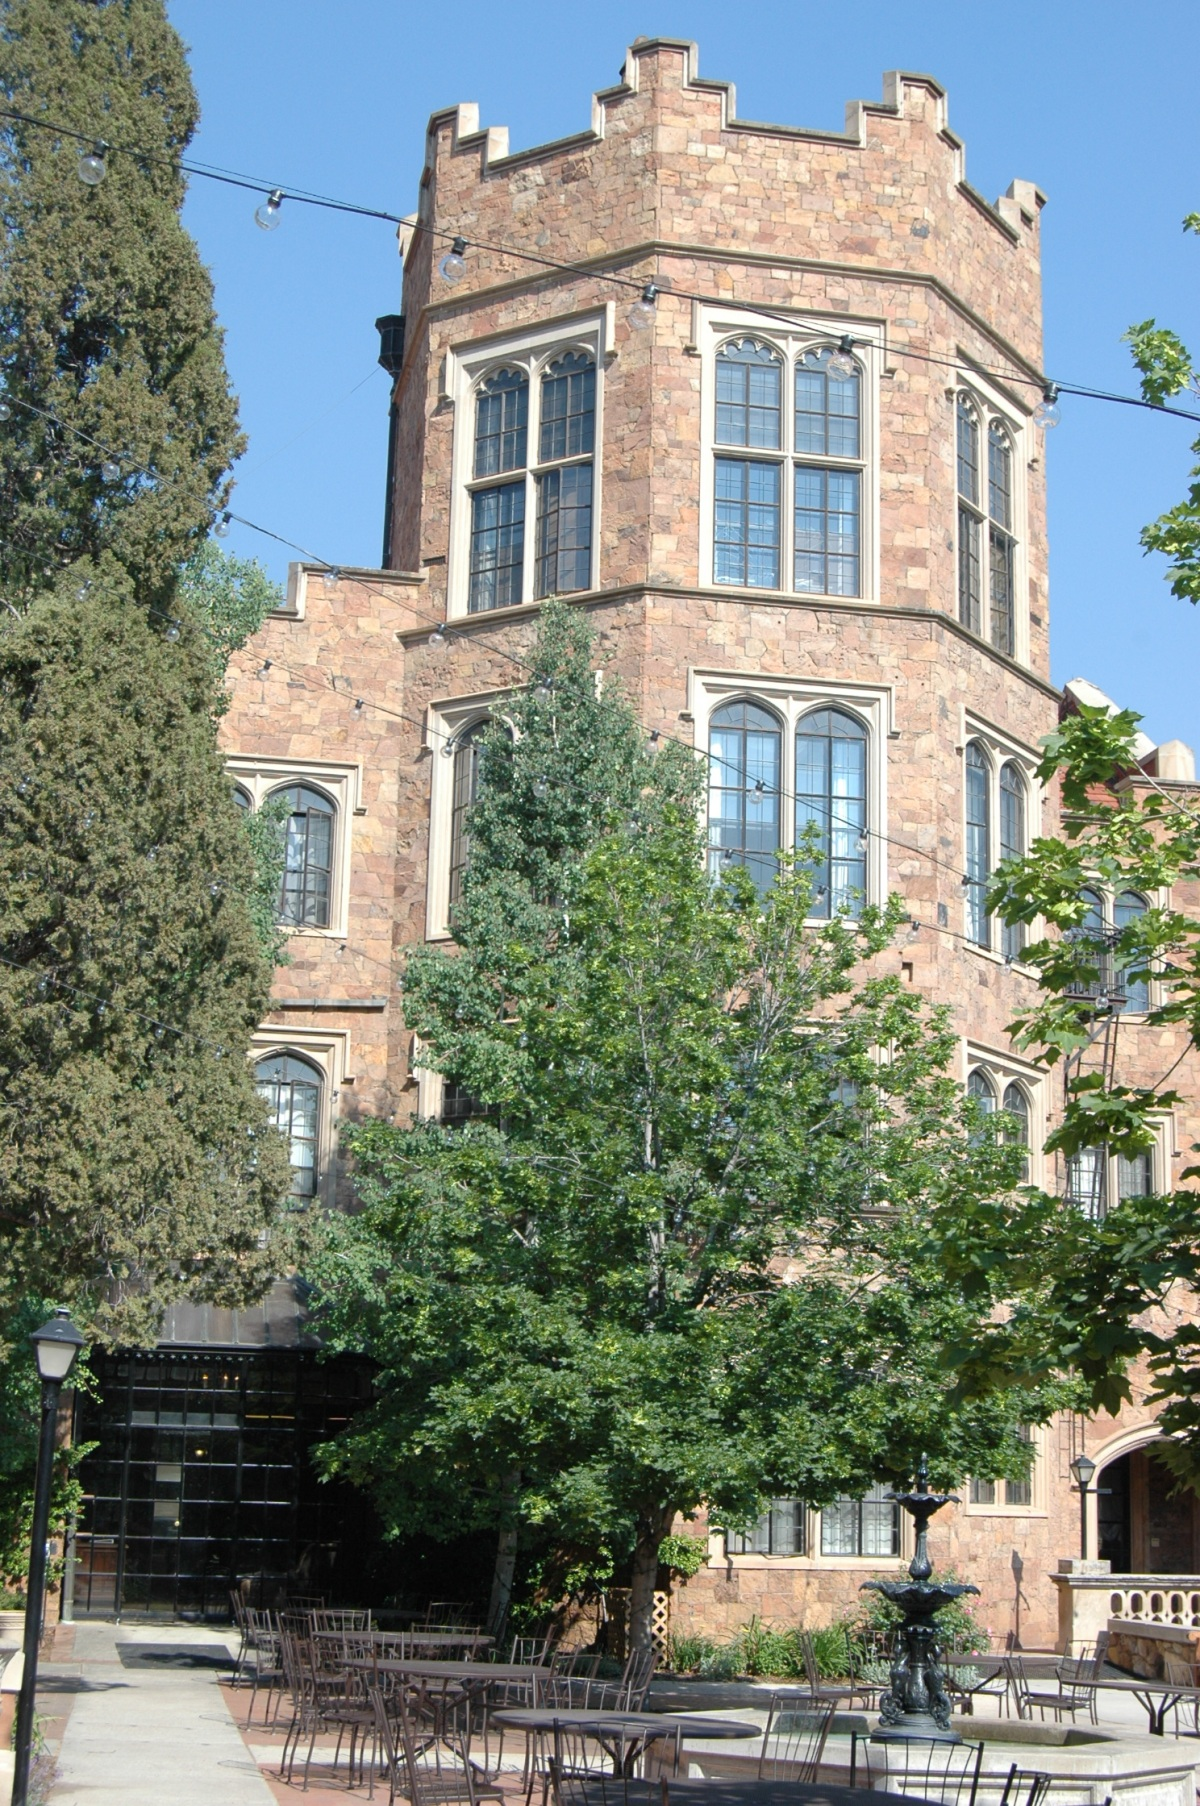 Castle turret at Glen Eyrie, Colorado Springs, CO